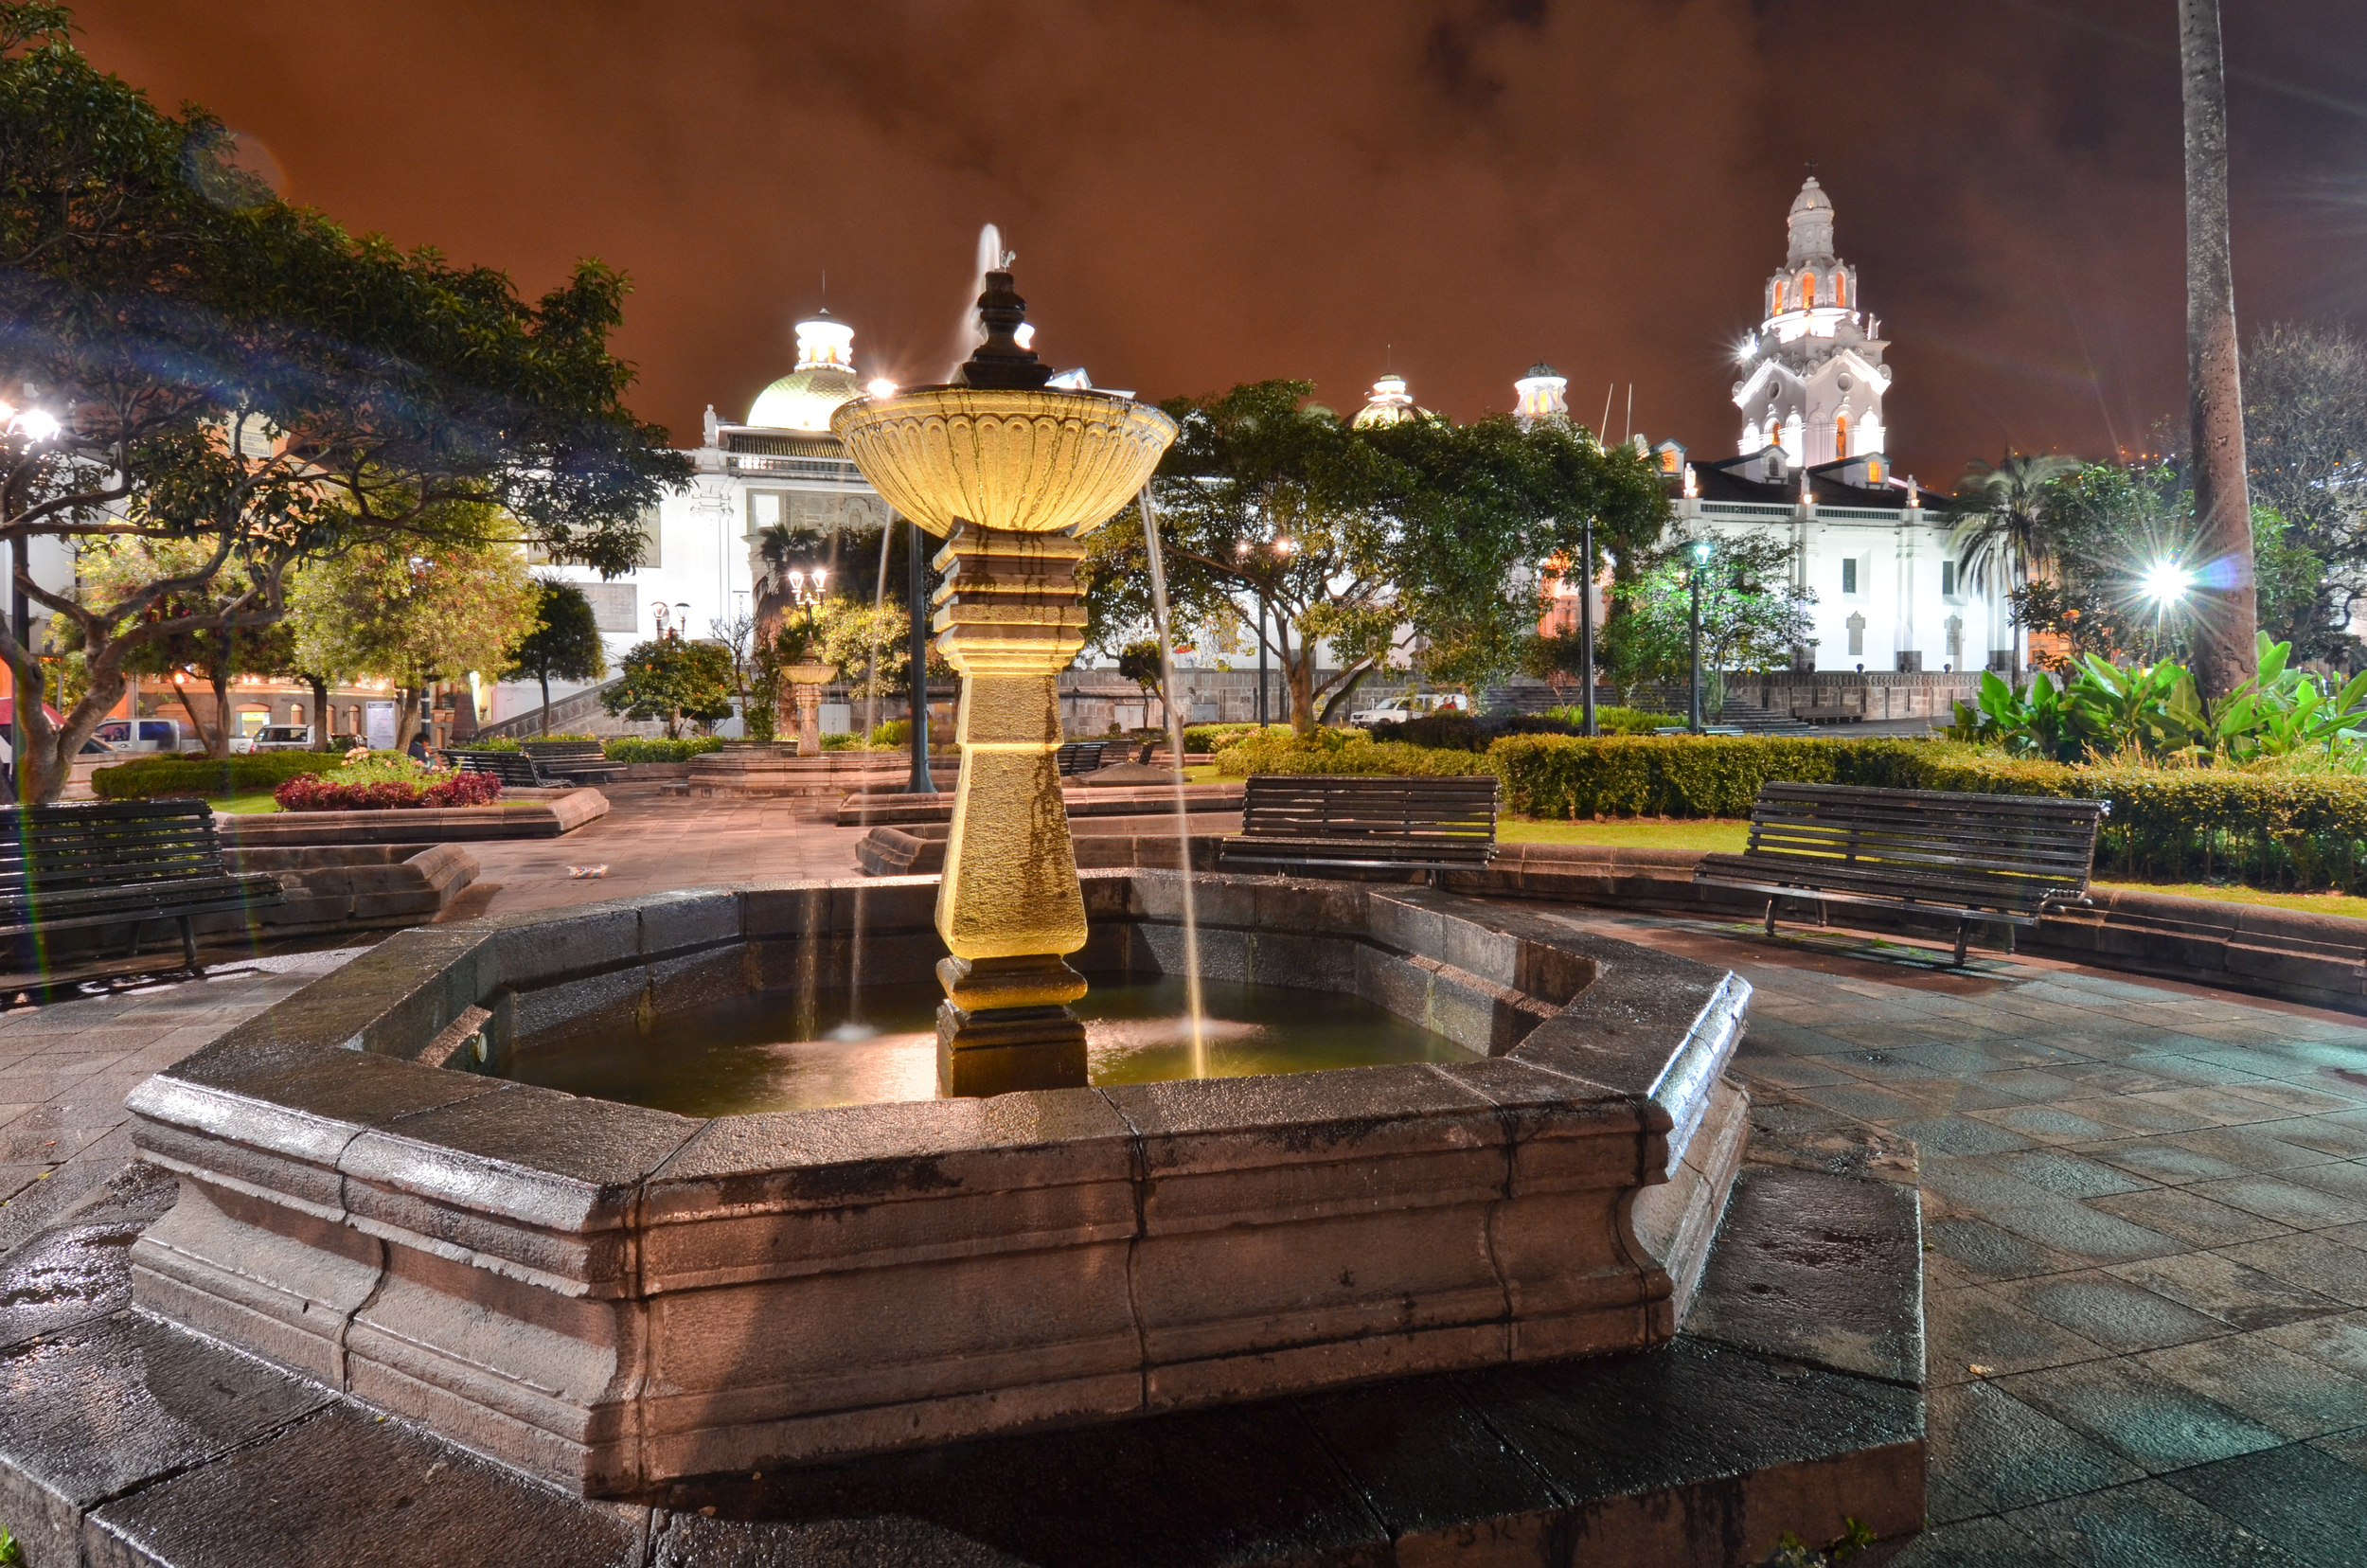 Quito Plaza Grande at night